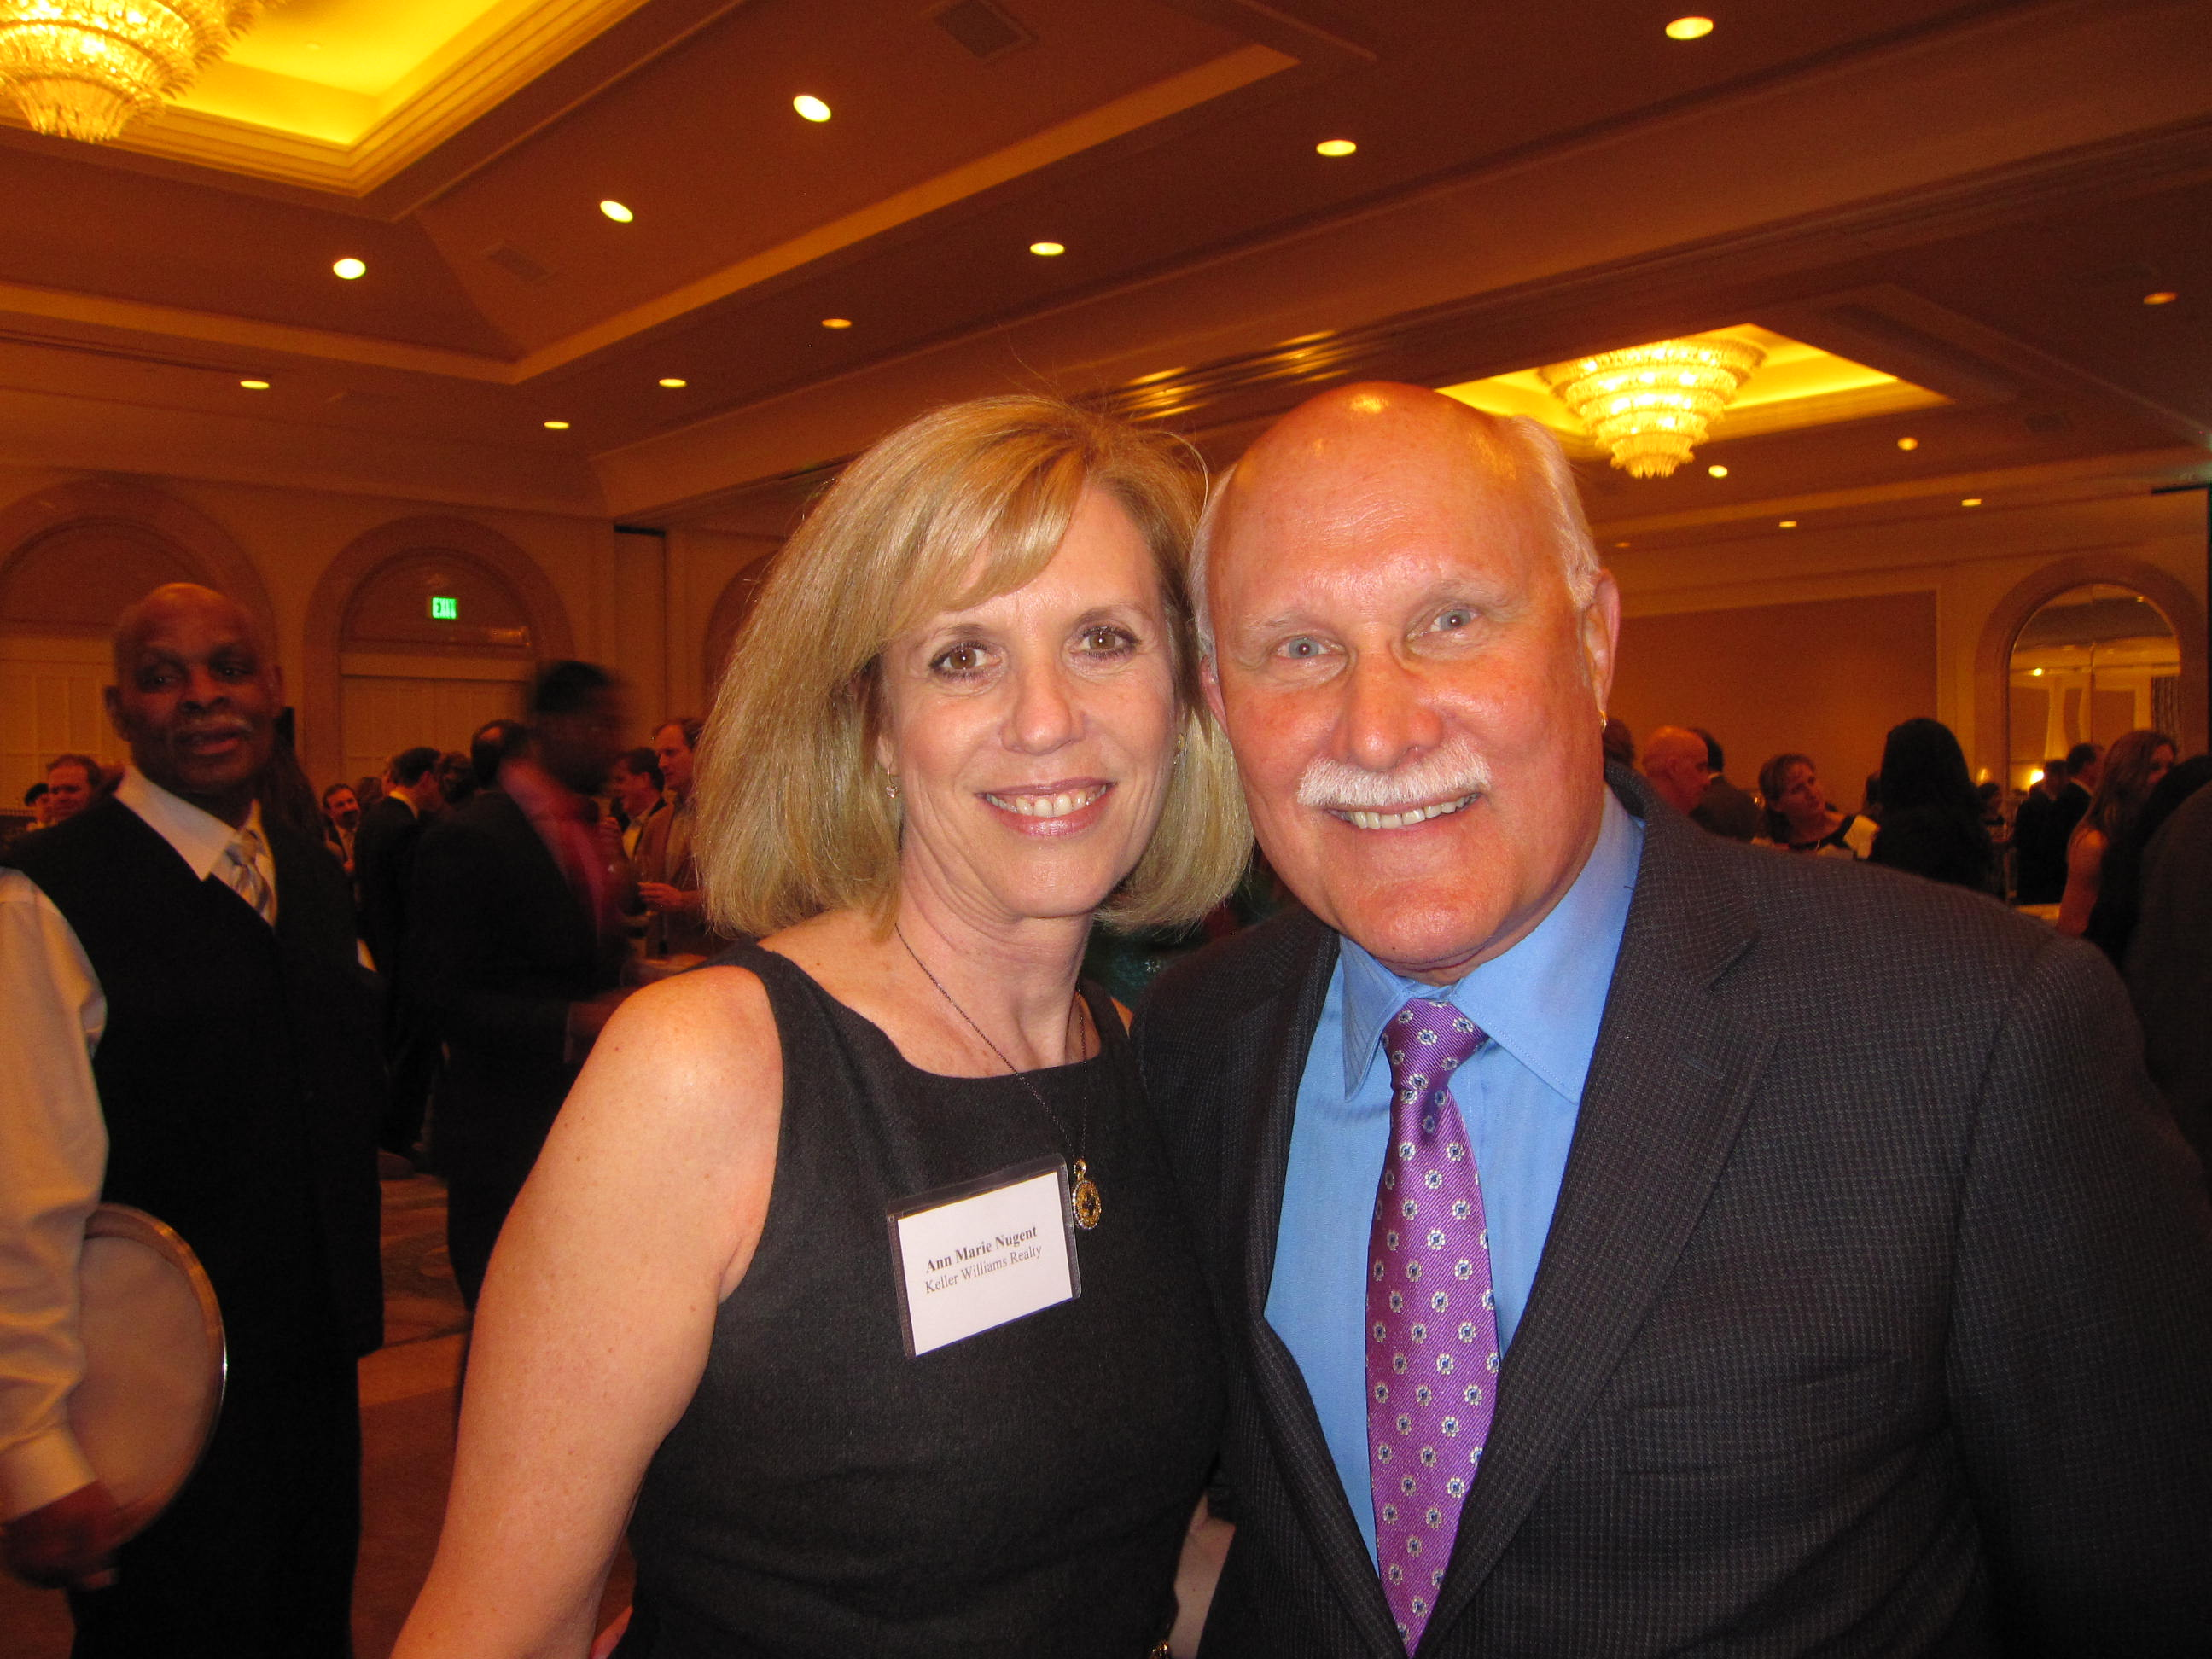 Walberg & Nugent Attend The Book of Lists Party